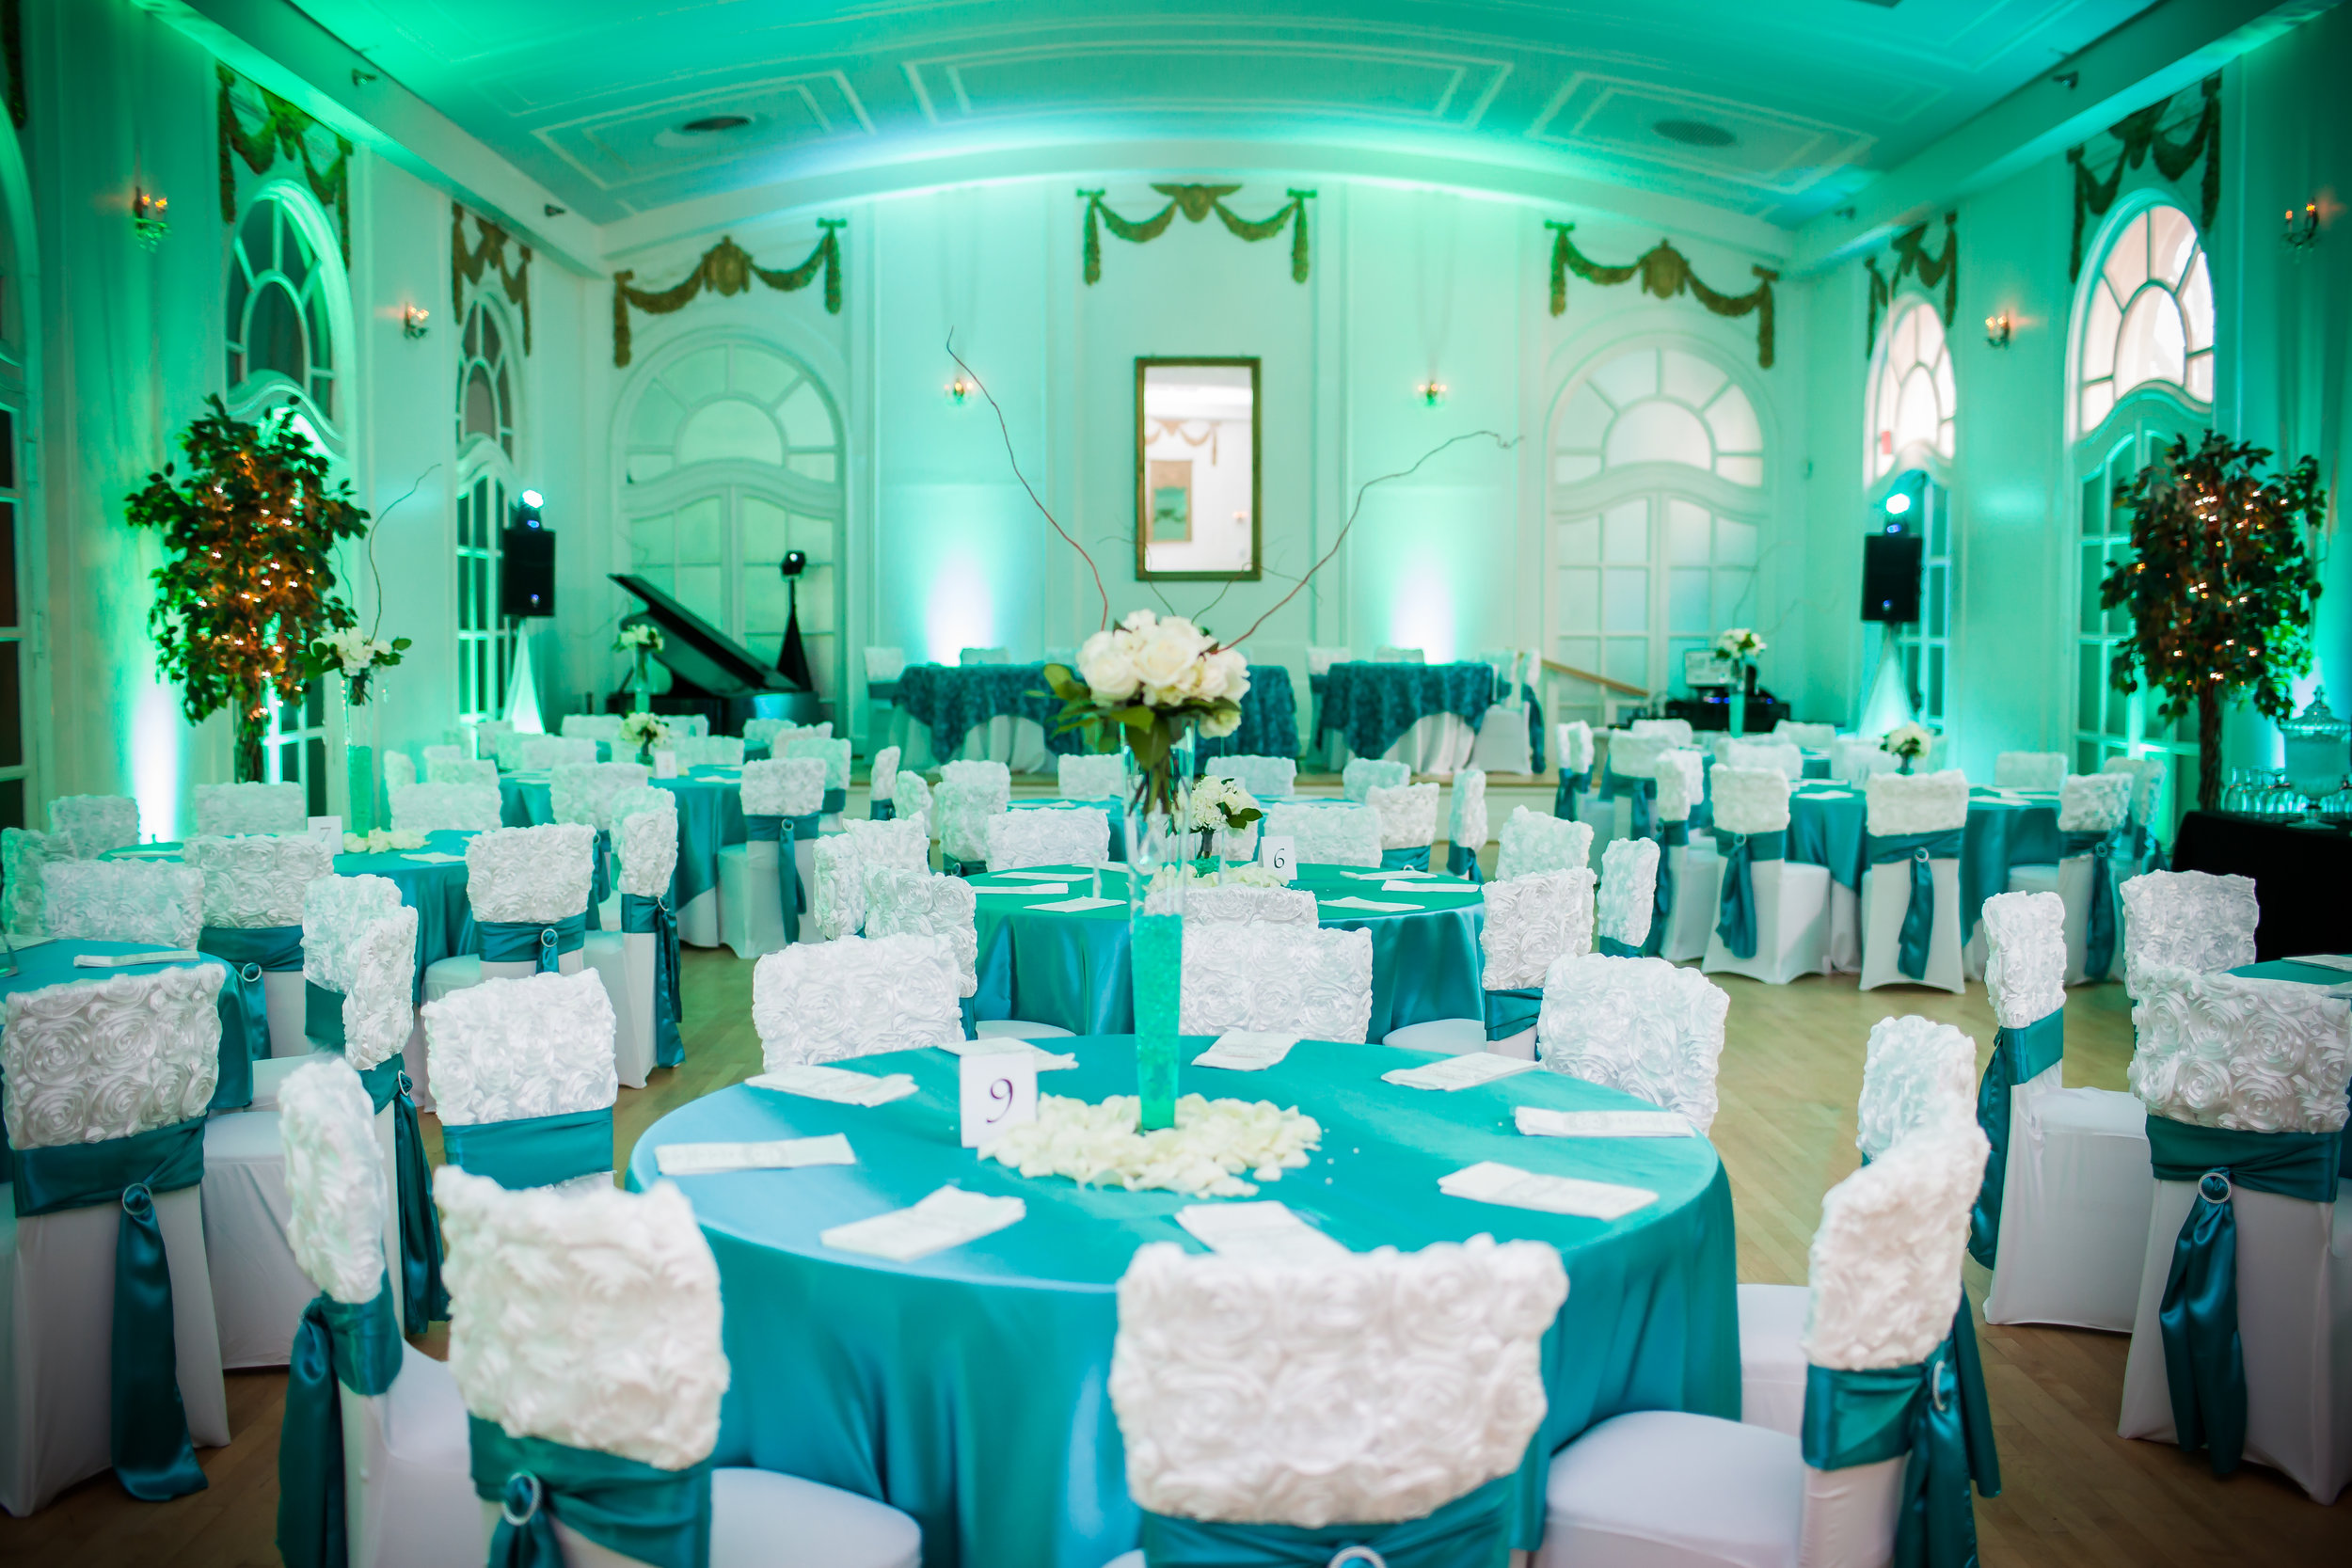 Uplighting - Ultimate Uplighting Package•Full Venue Uplighting•16-32 wireless lights •ColorCombinations available